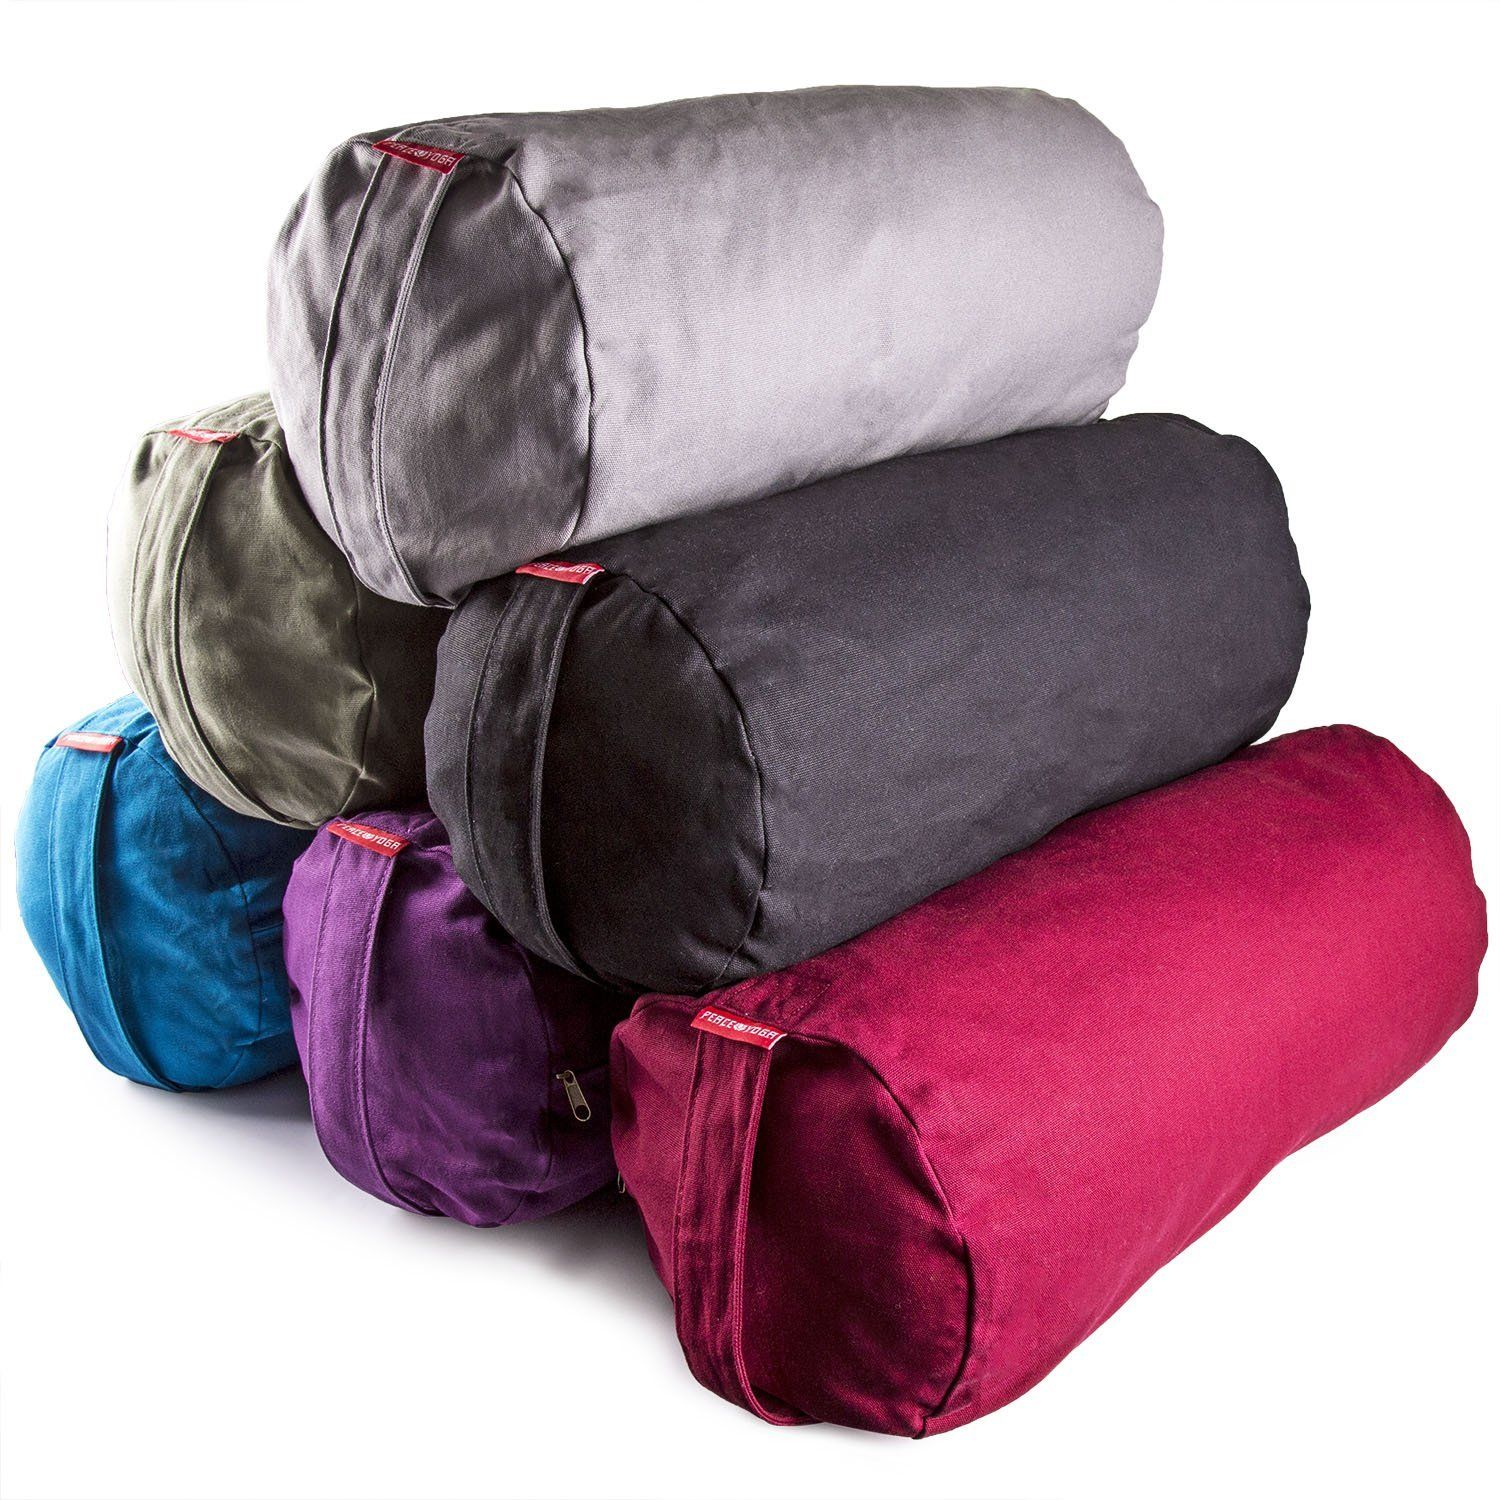 product bolster cushion brown yoga pillow short akha block category meditation support colour page kapok cushions and